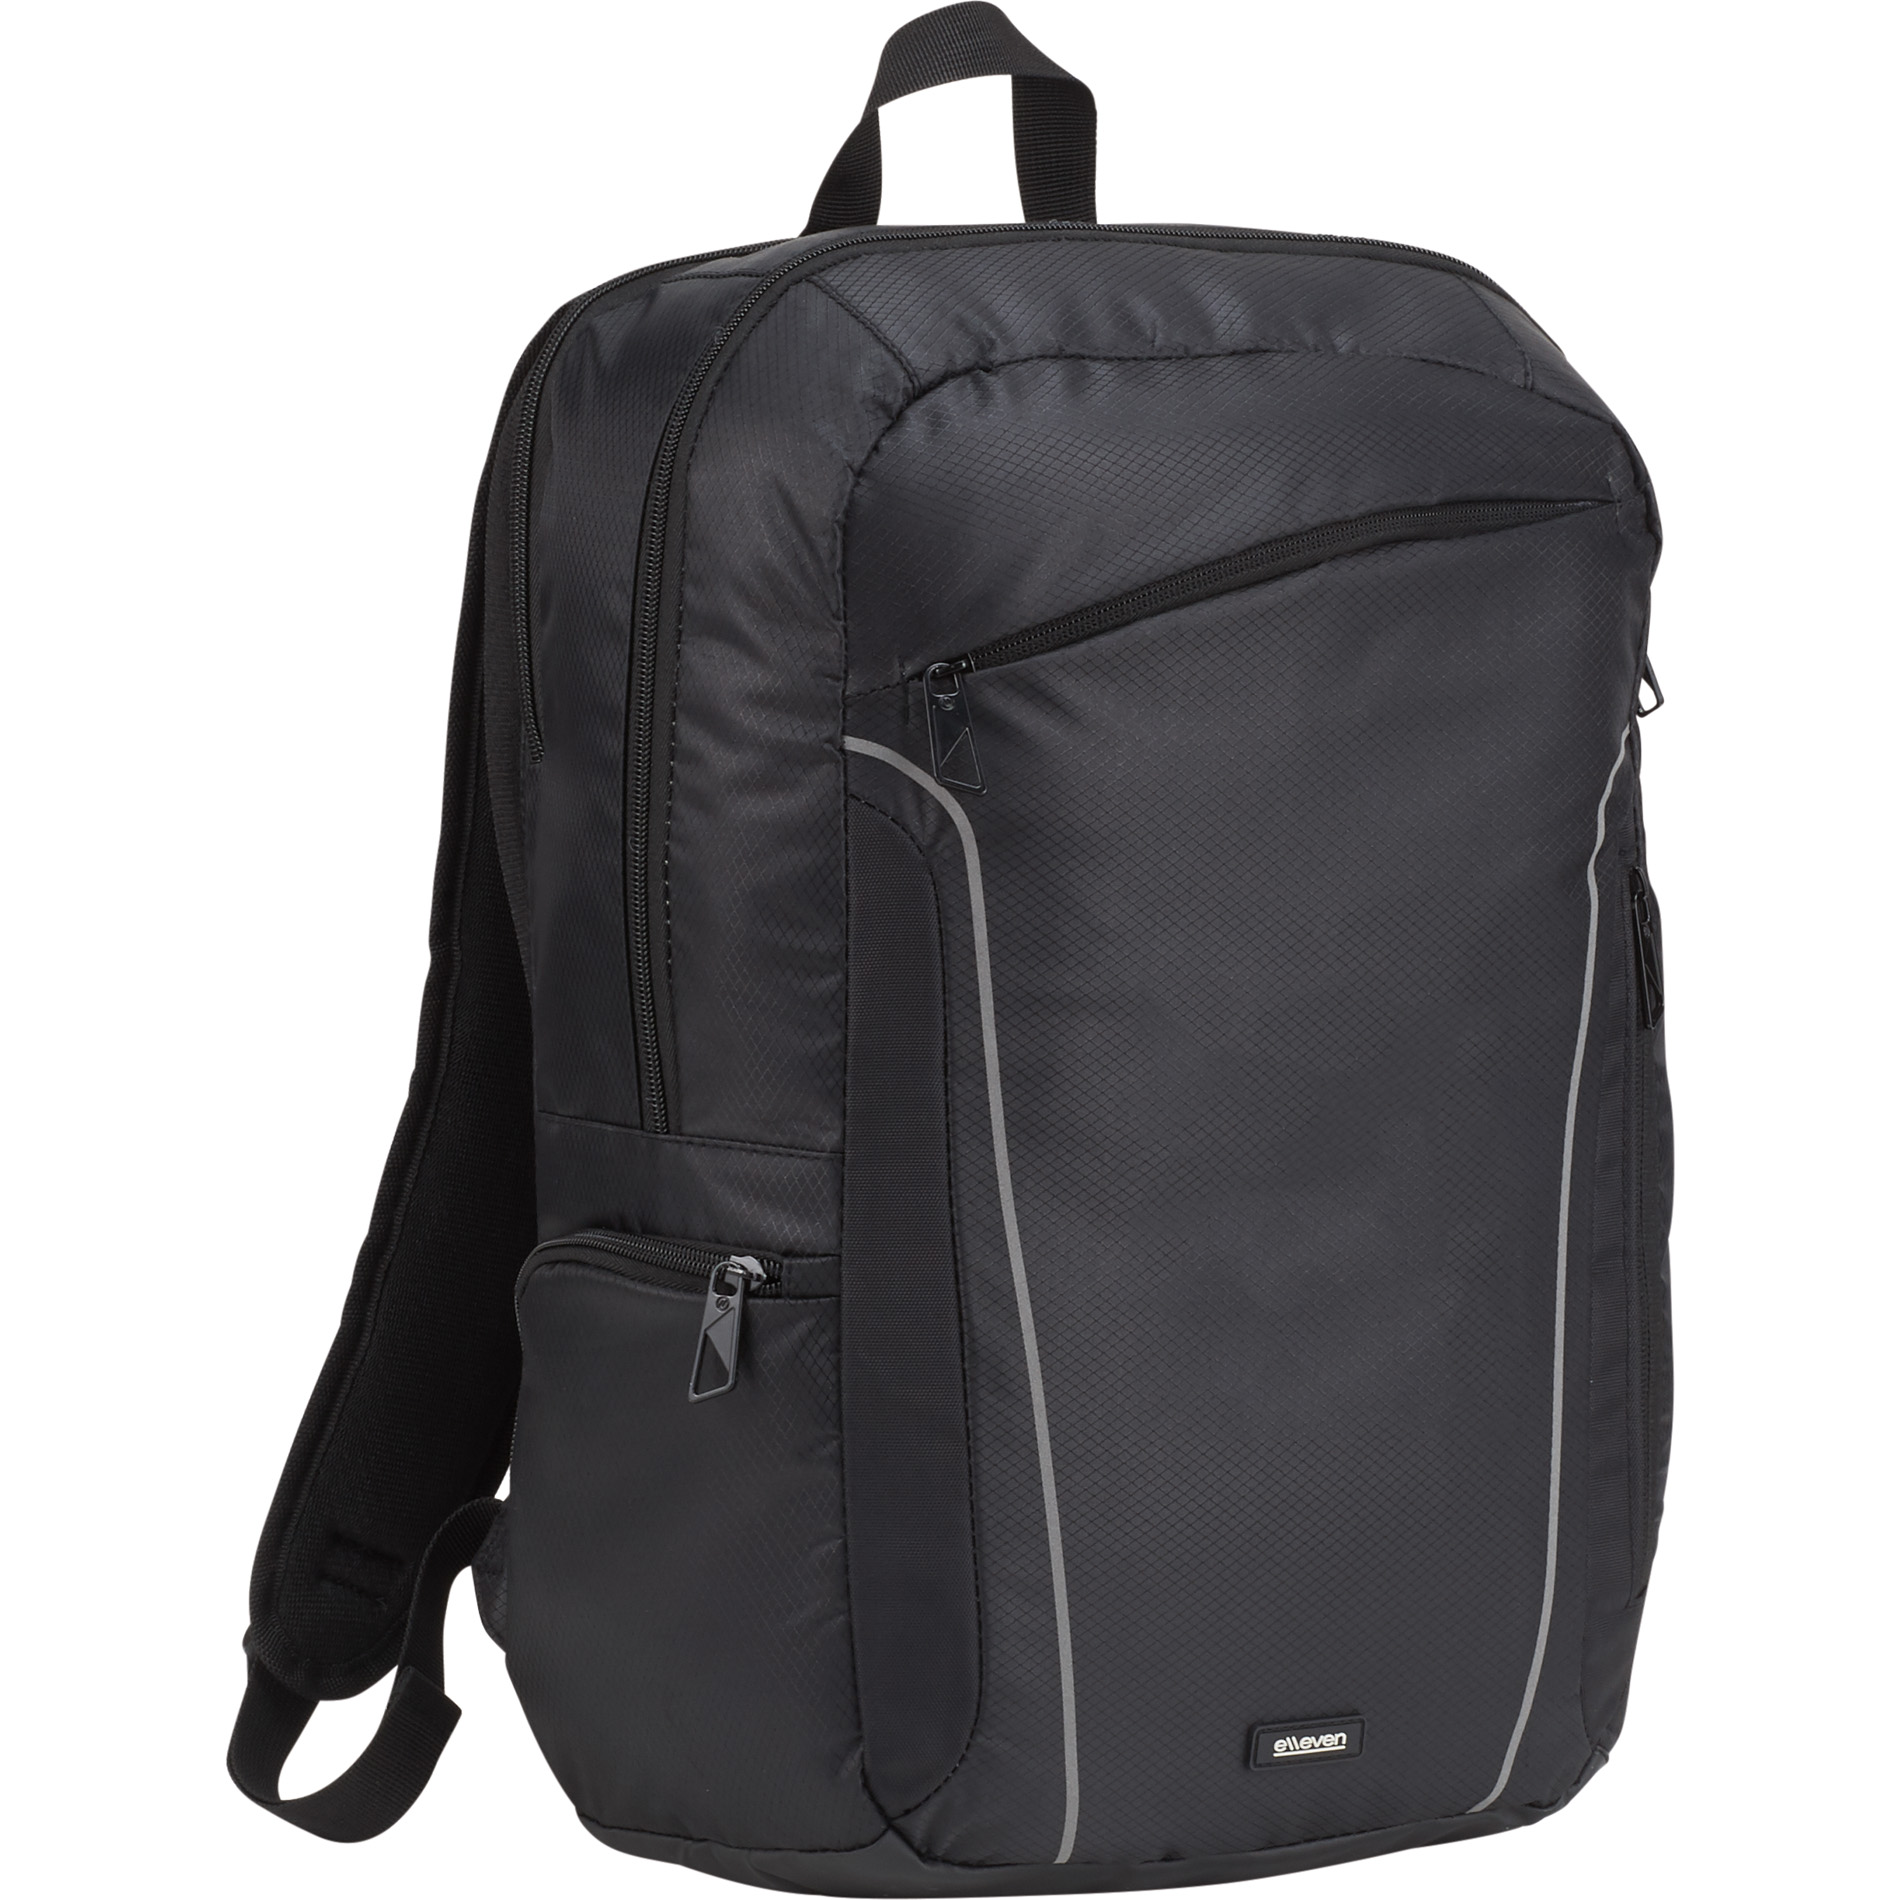 "elleven 0011-94 - Pact 15"" Computer Backpack"